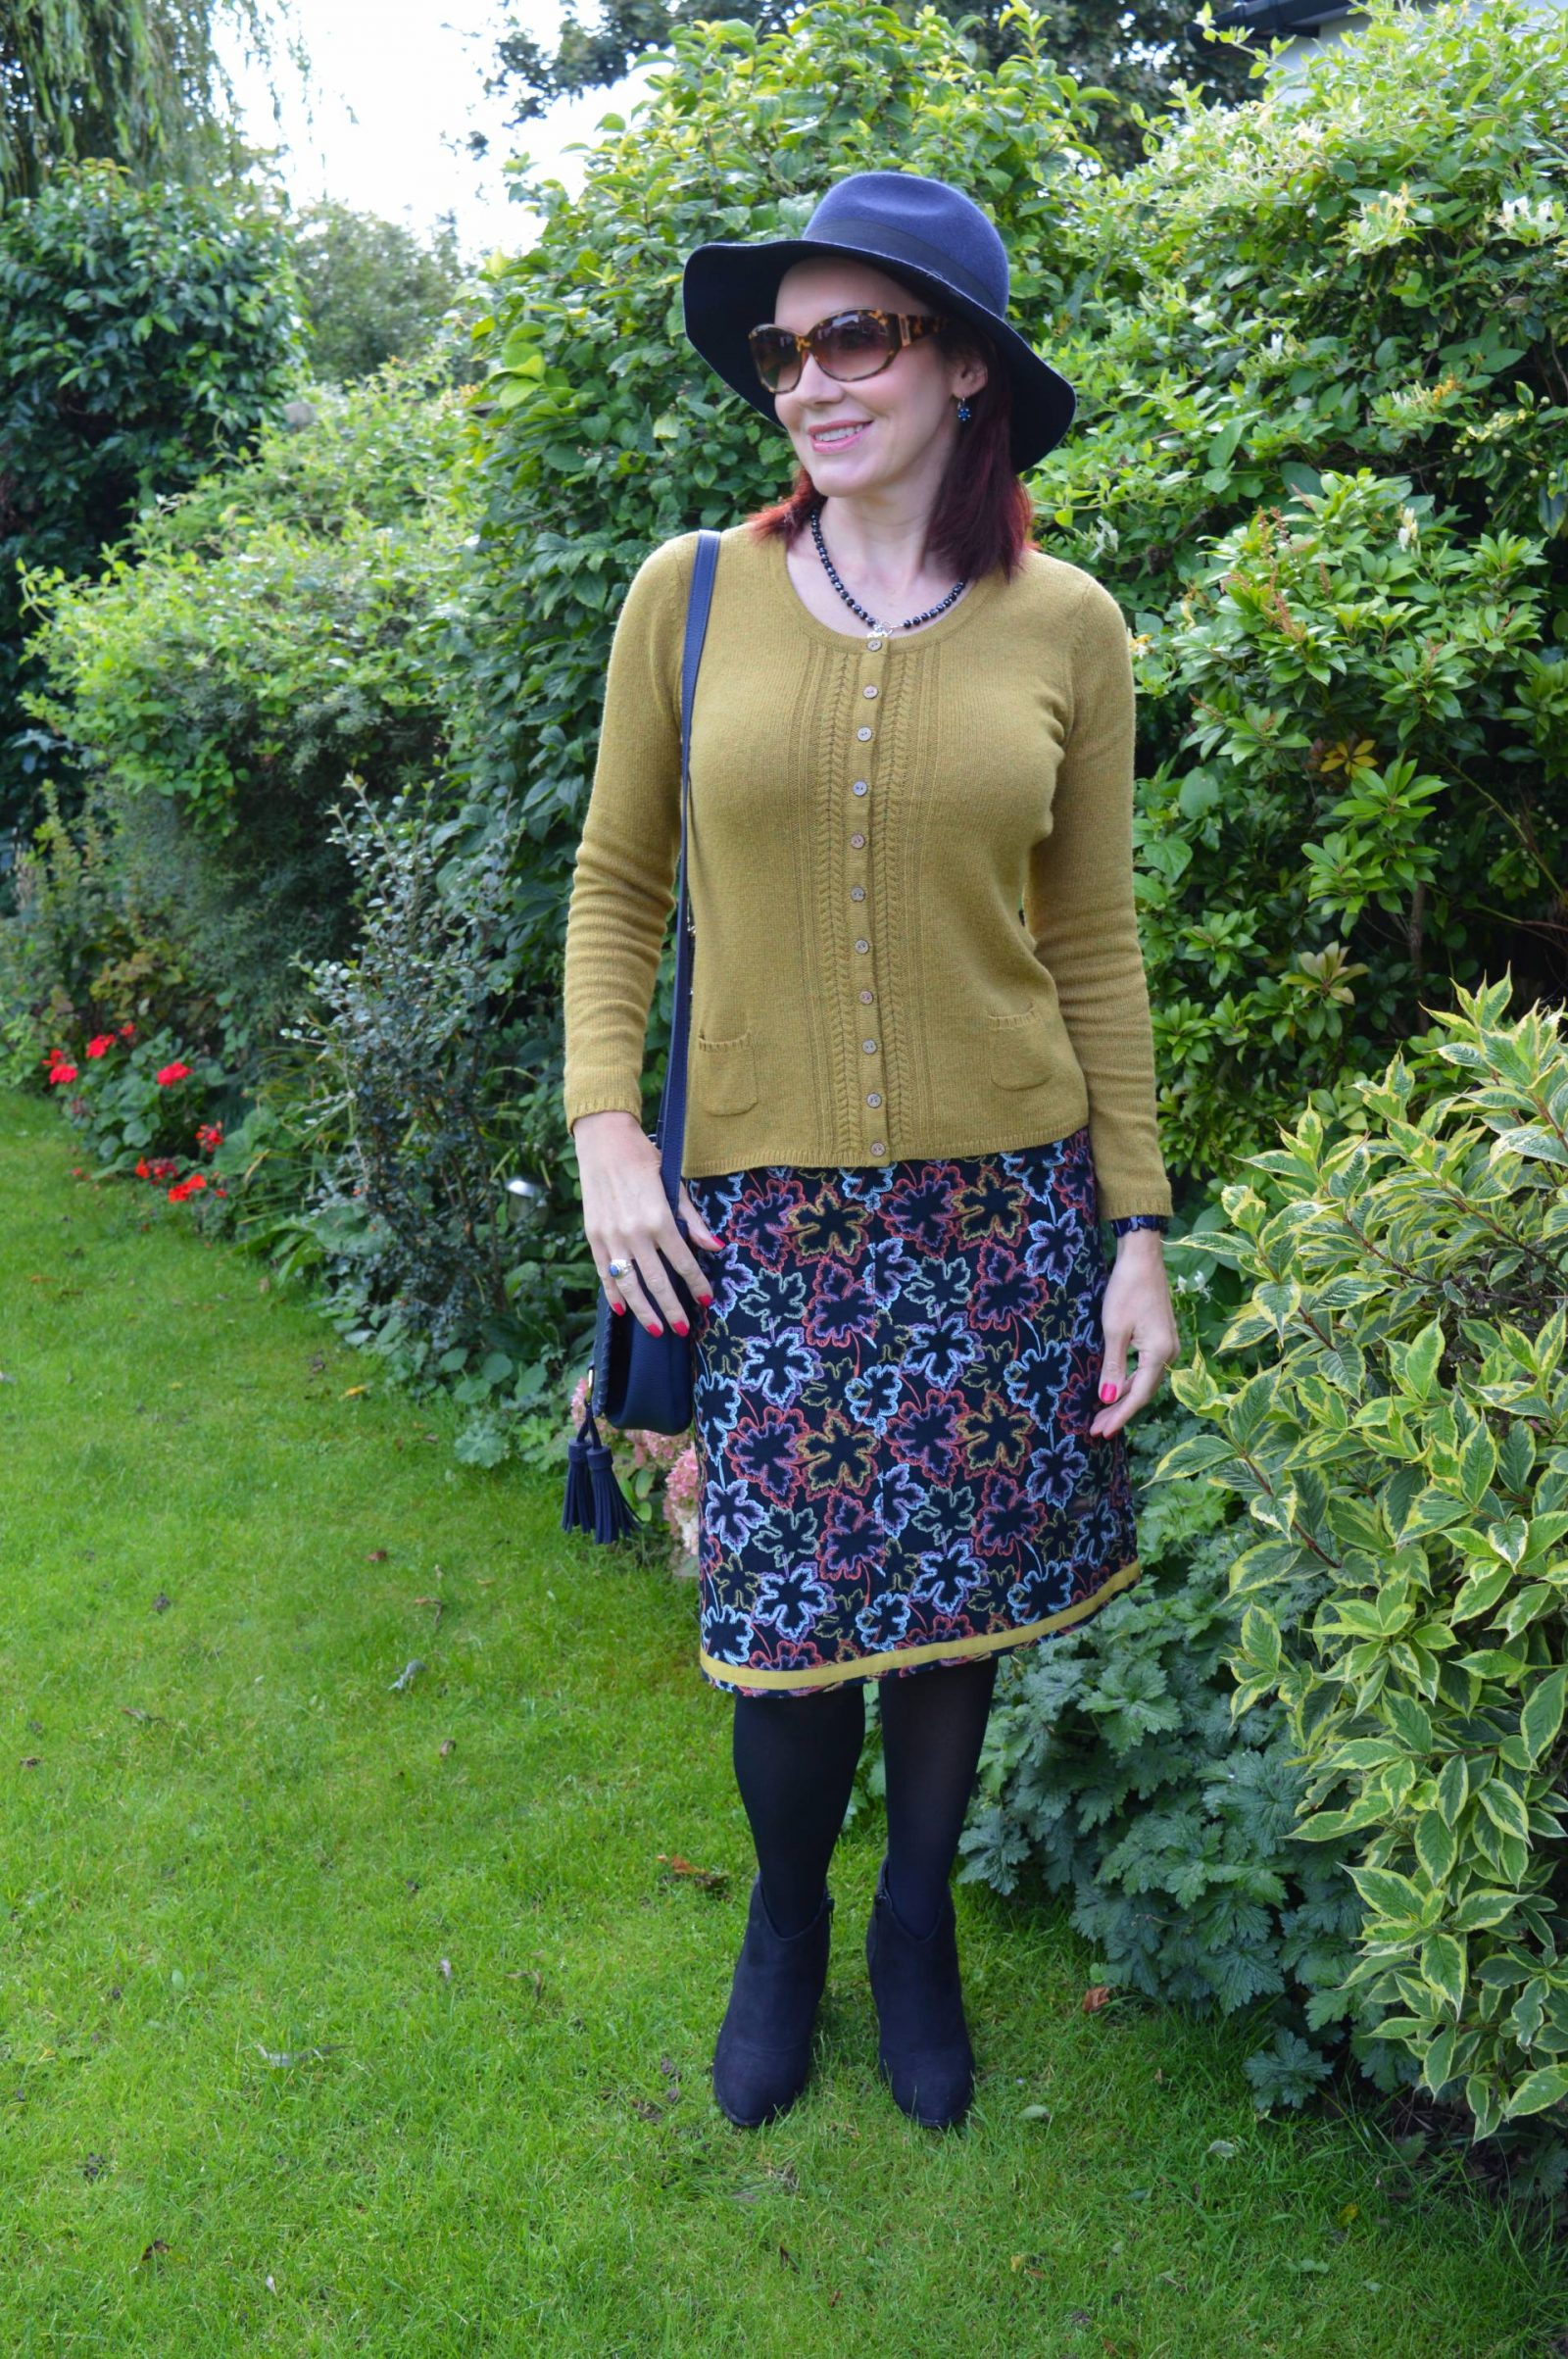 Mistral Cardigan and Leaf Print Skirt